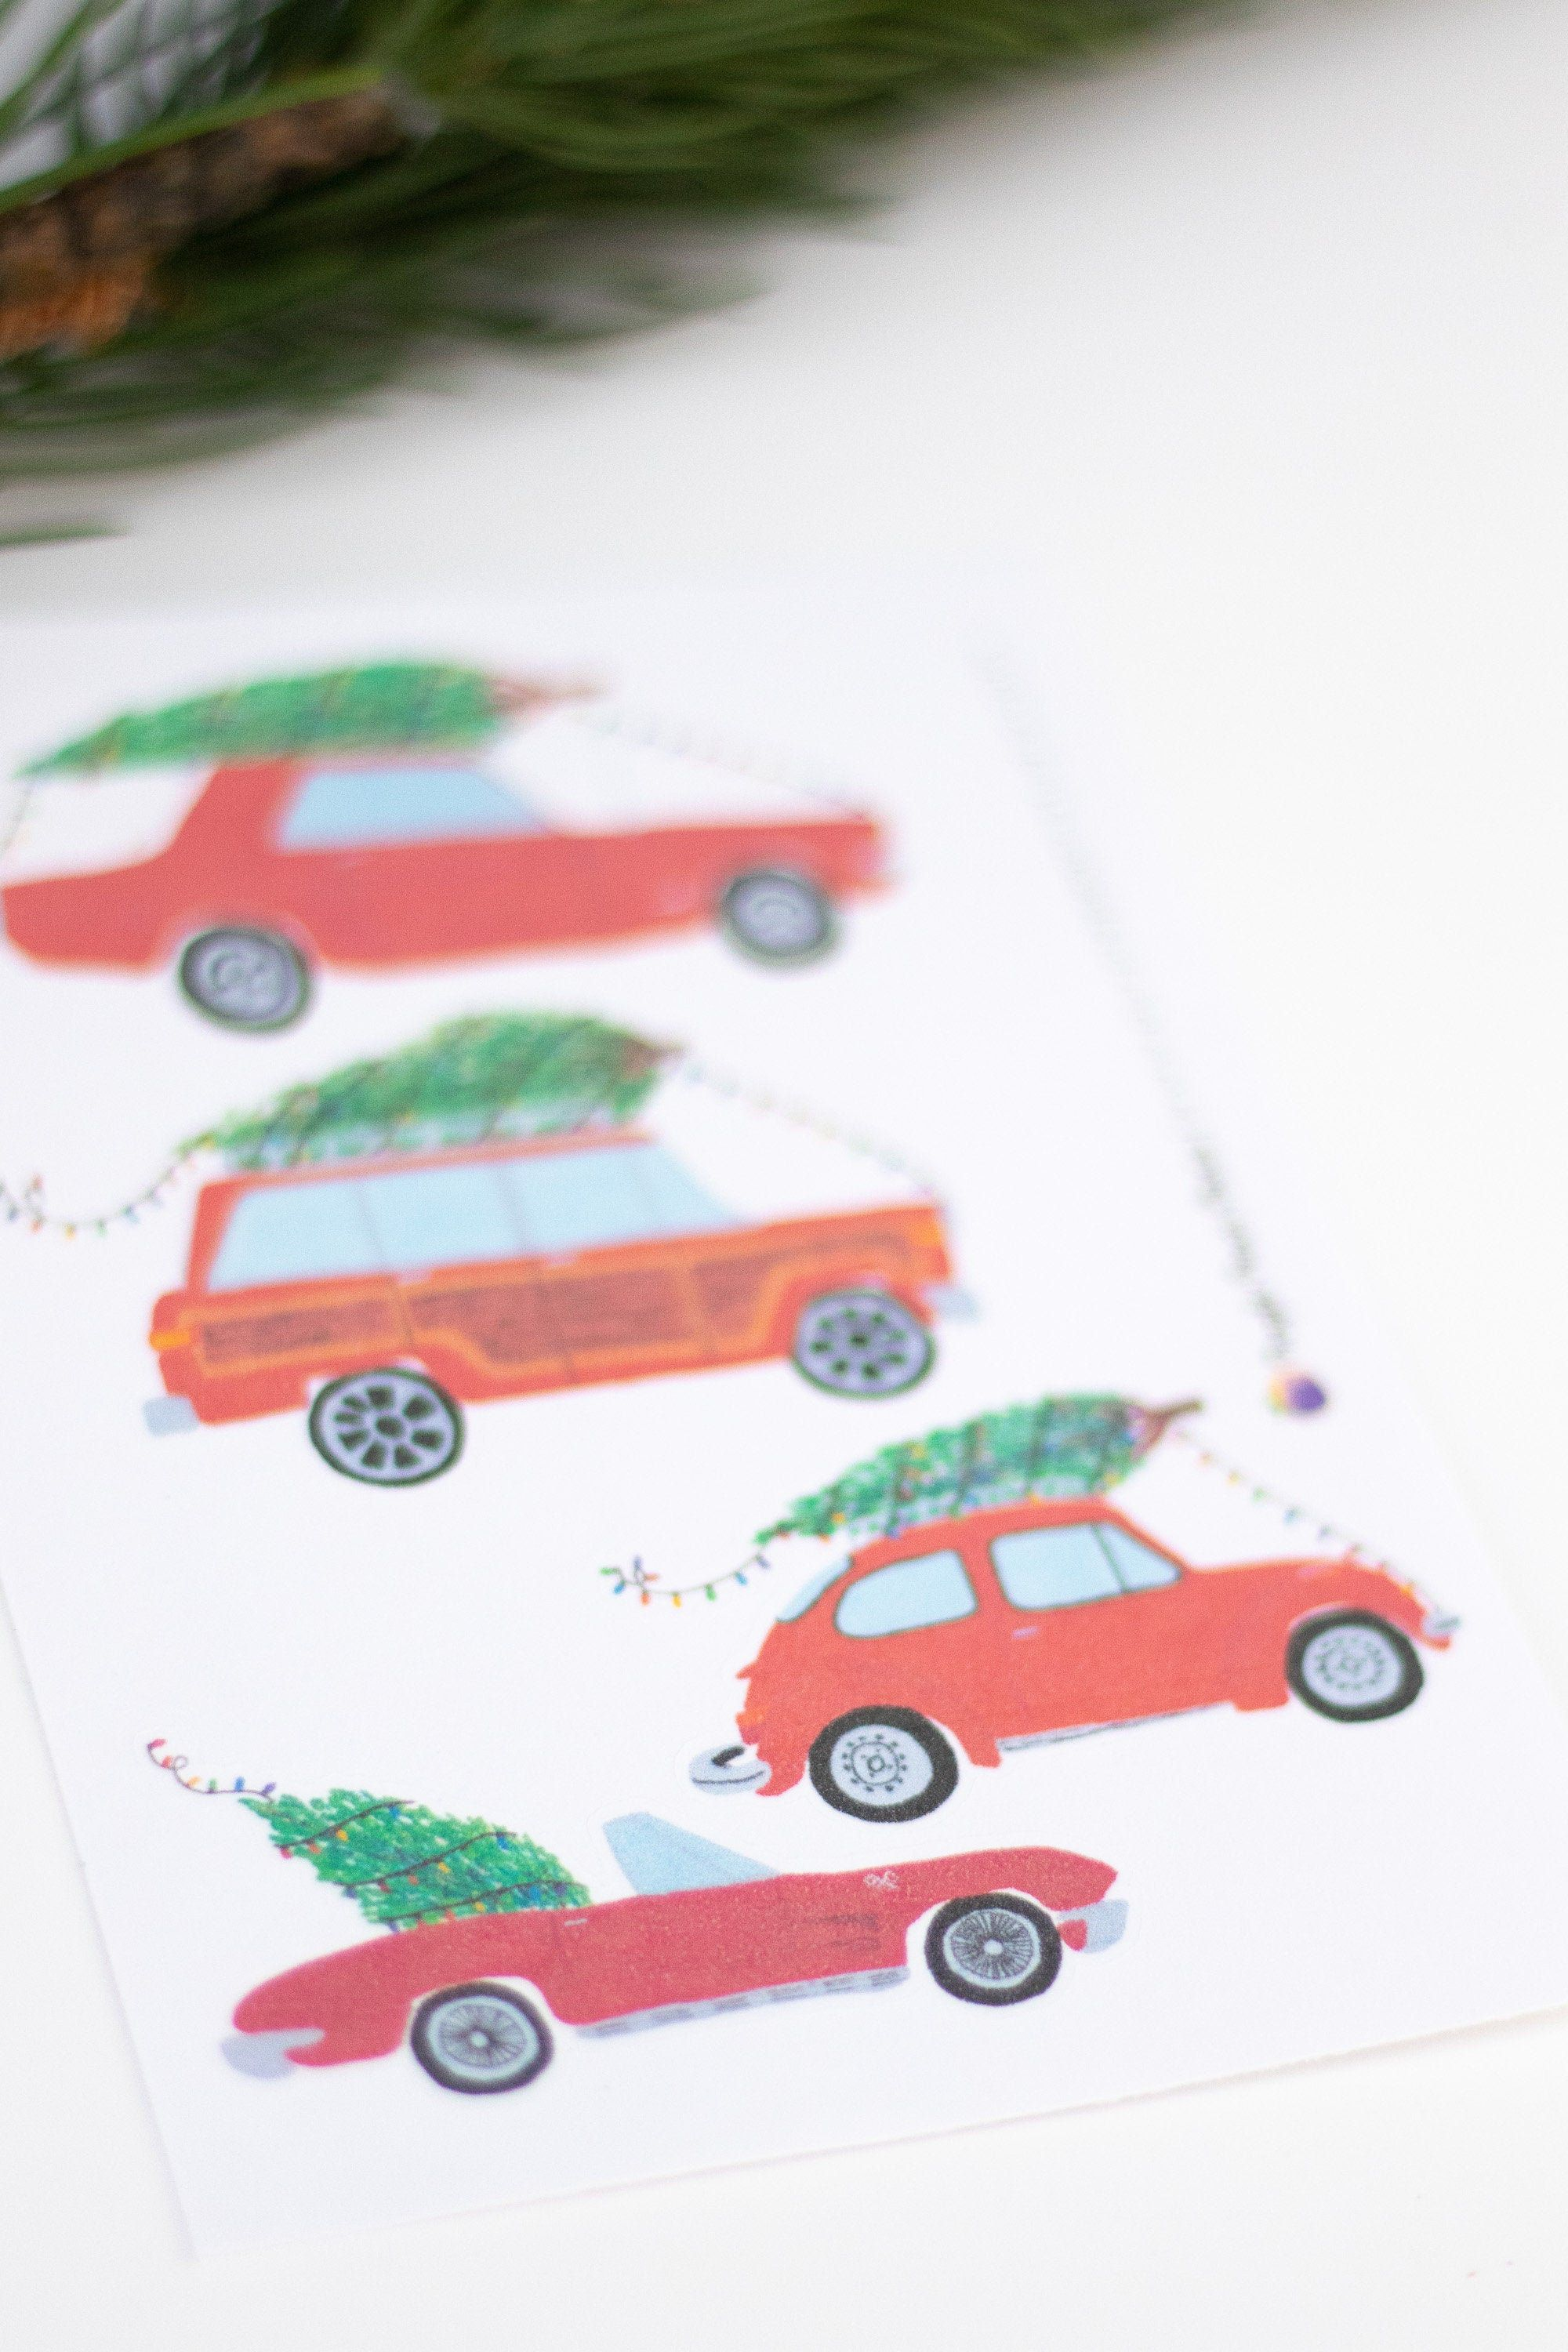 Small Classic Car Christmas Stickers | Classic Cars Carrying Christmas Trees | Vintage Cars Carrying Trees | Vintage Car Stickers Christmas